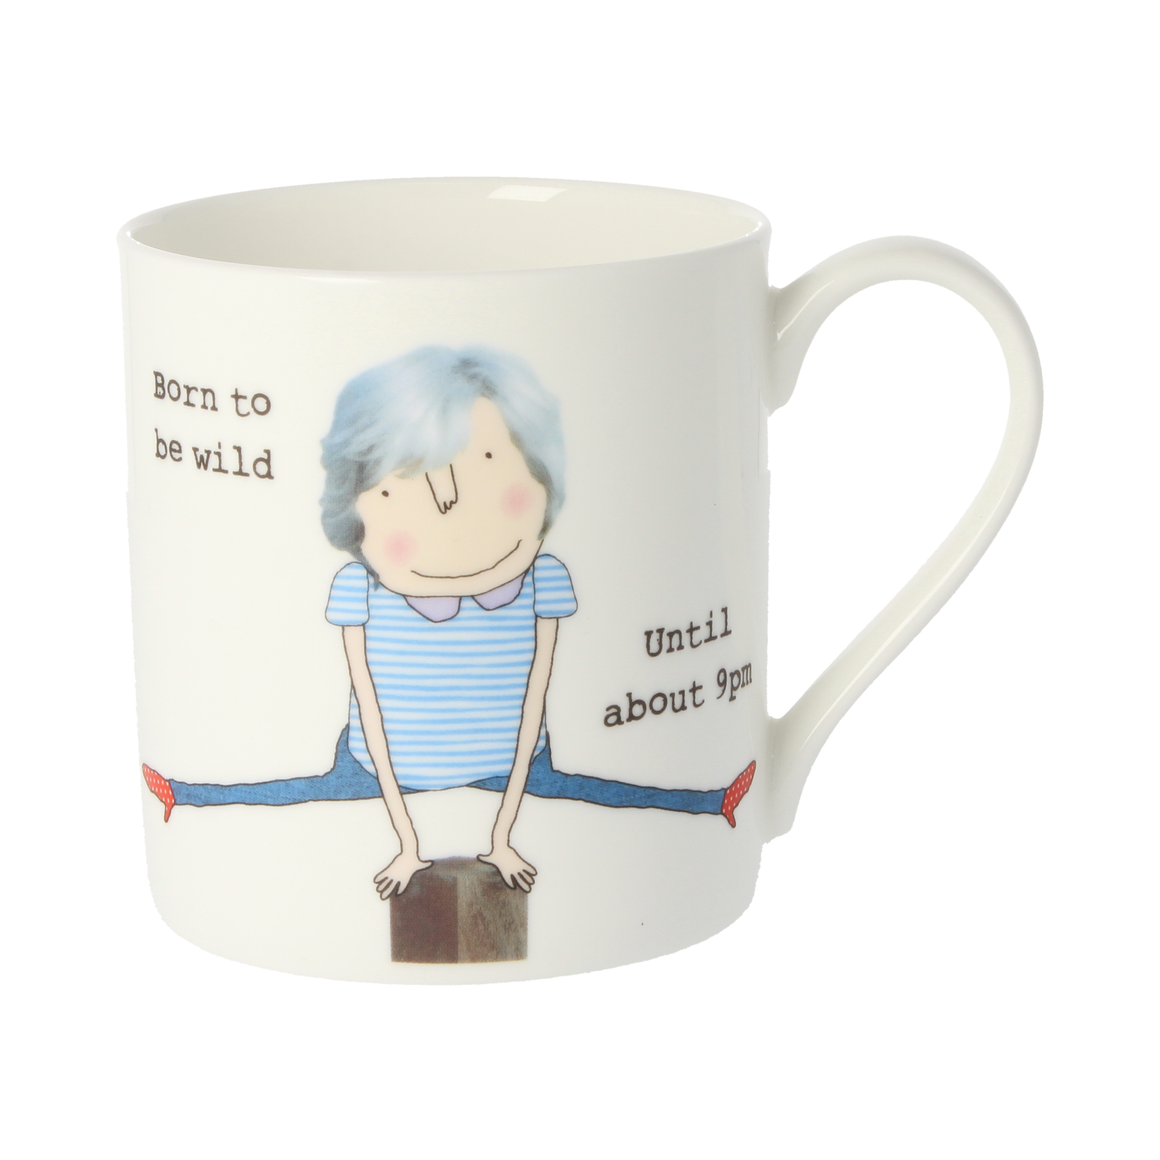 Rosie Made a Thing Born to be Wild China Mug